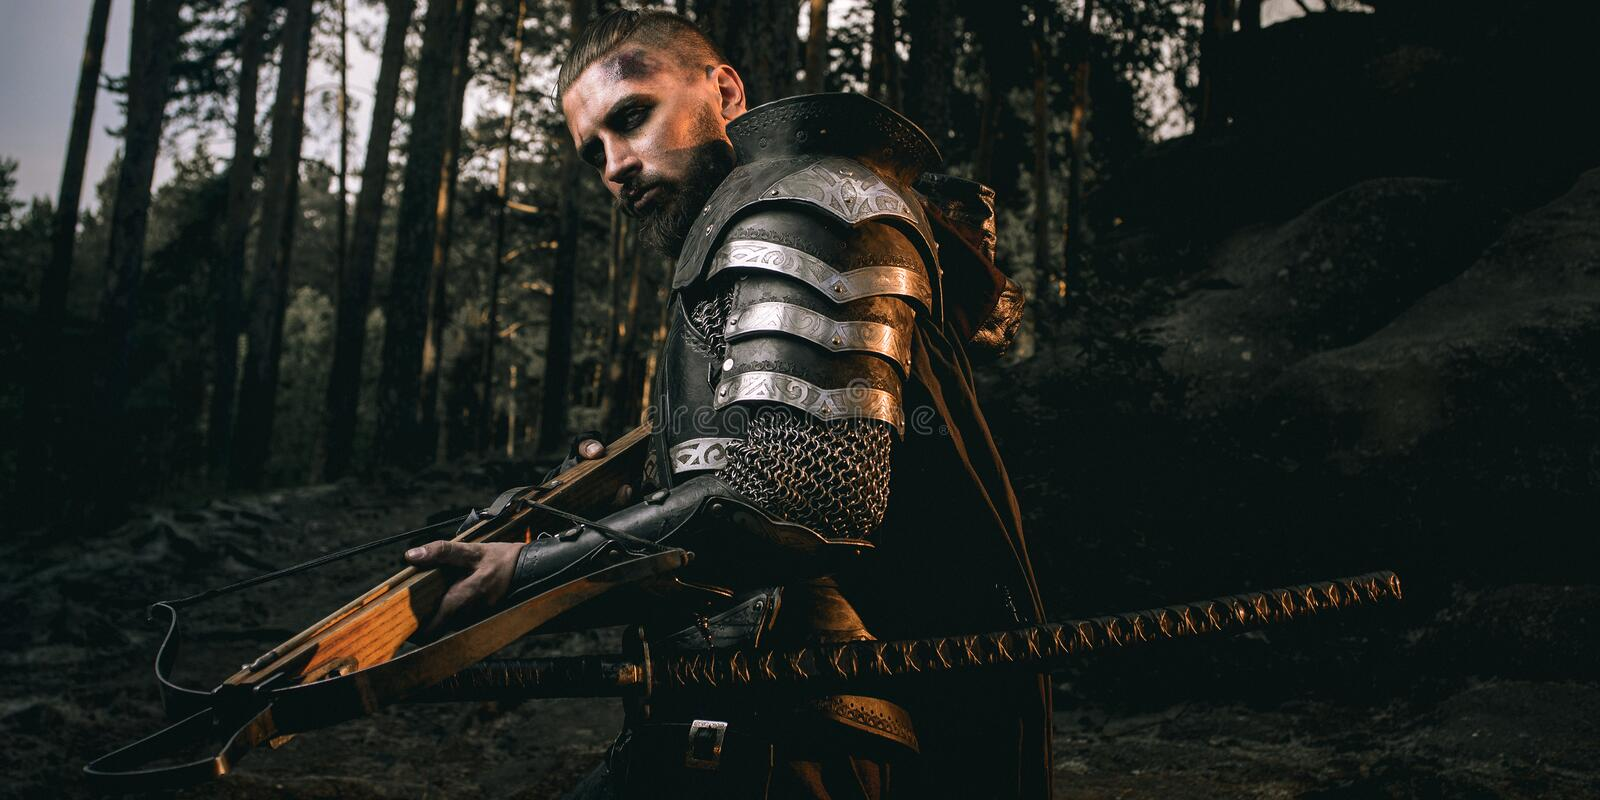 Mystery scarface knight in armor with sword and crossbow in the forest royalty free stock image